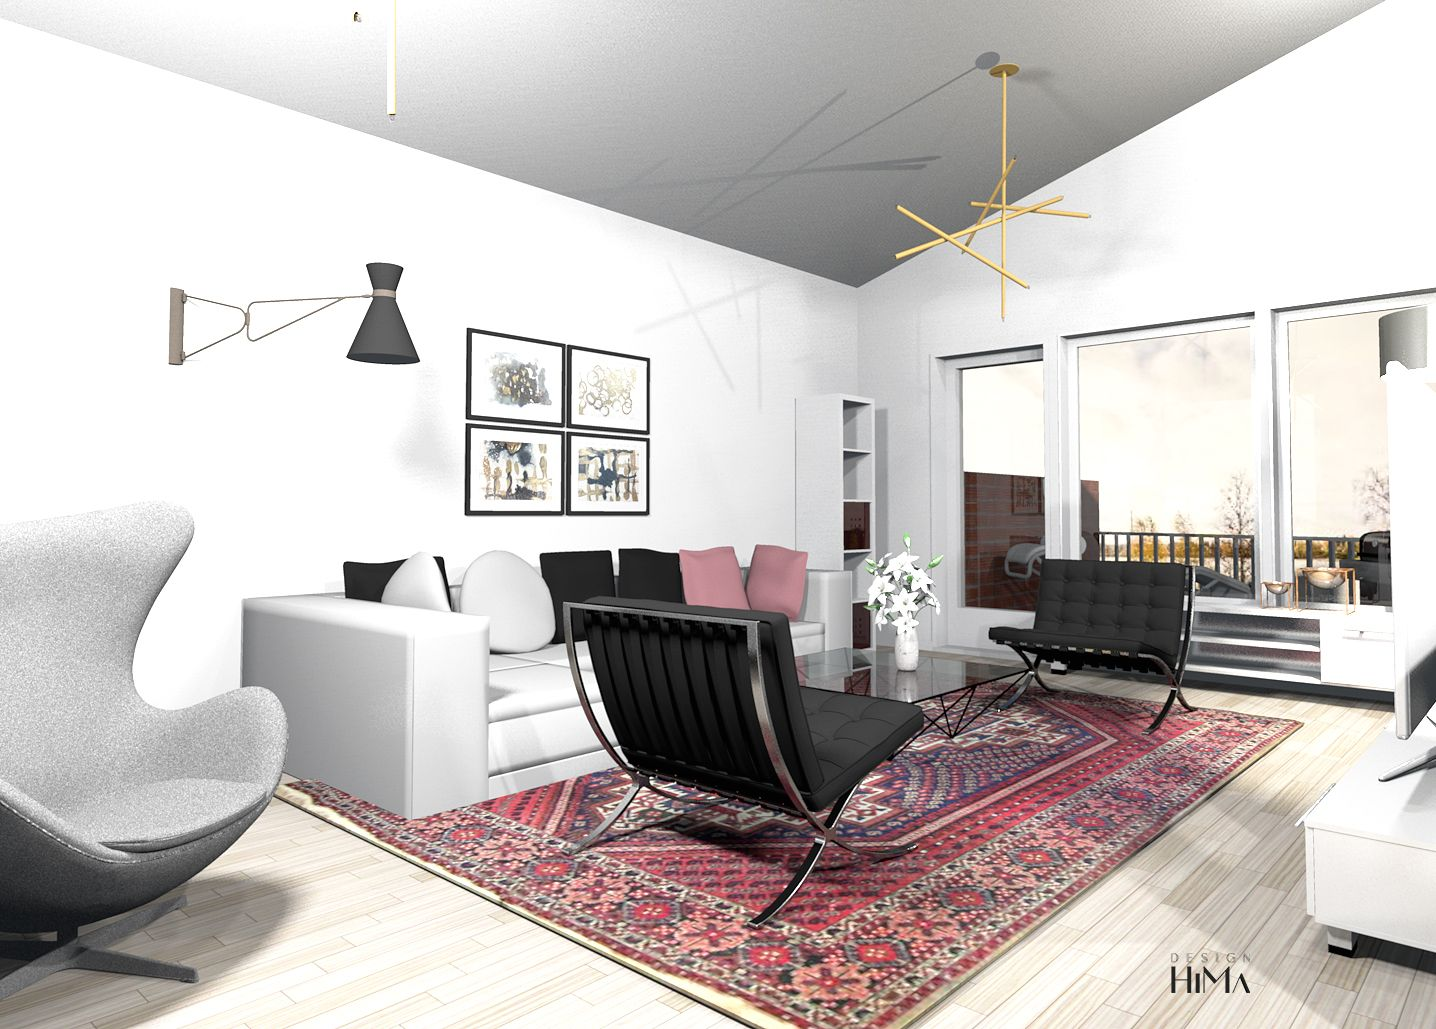 3D, Living Room, Egg Chair, Barcelona Chairs, Oriental Rug, Itämainen Matto